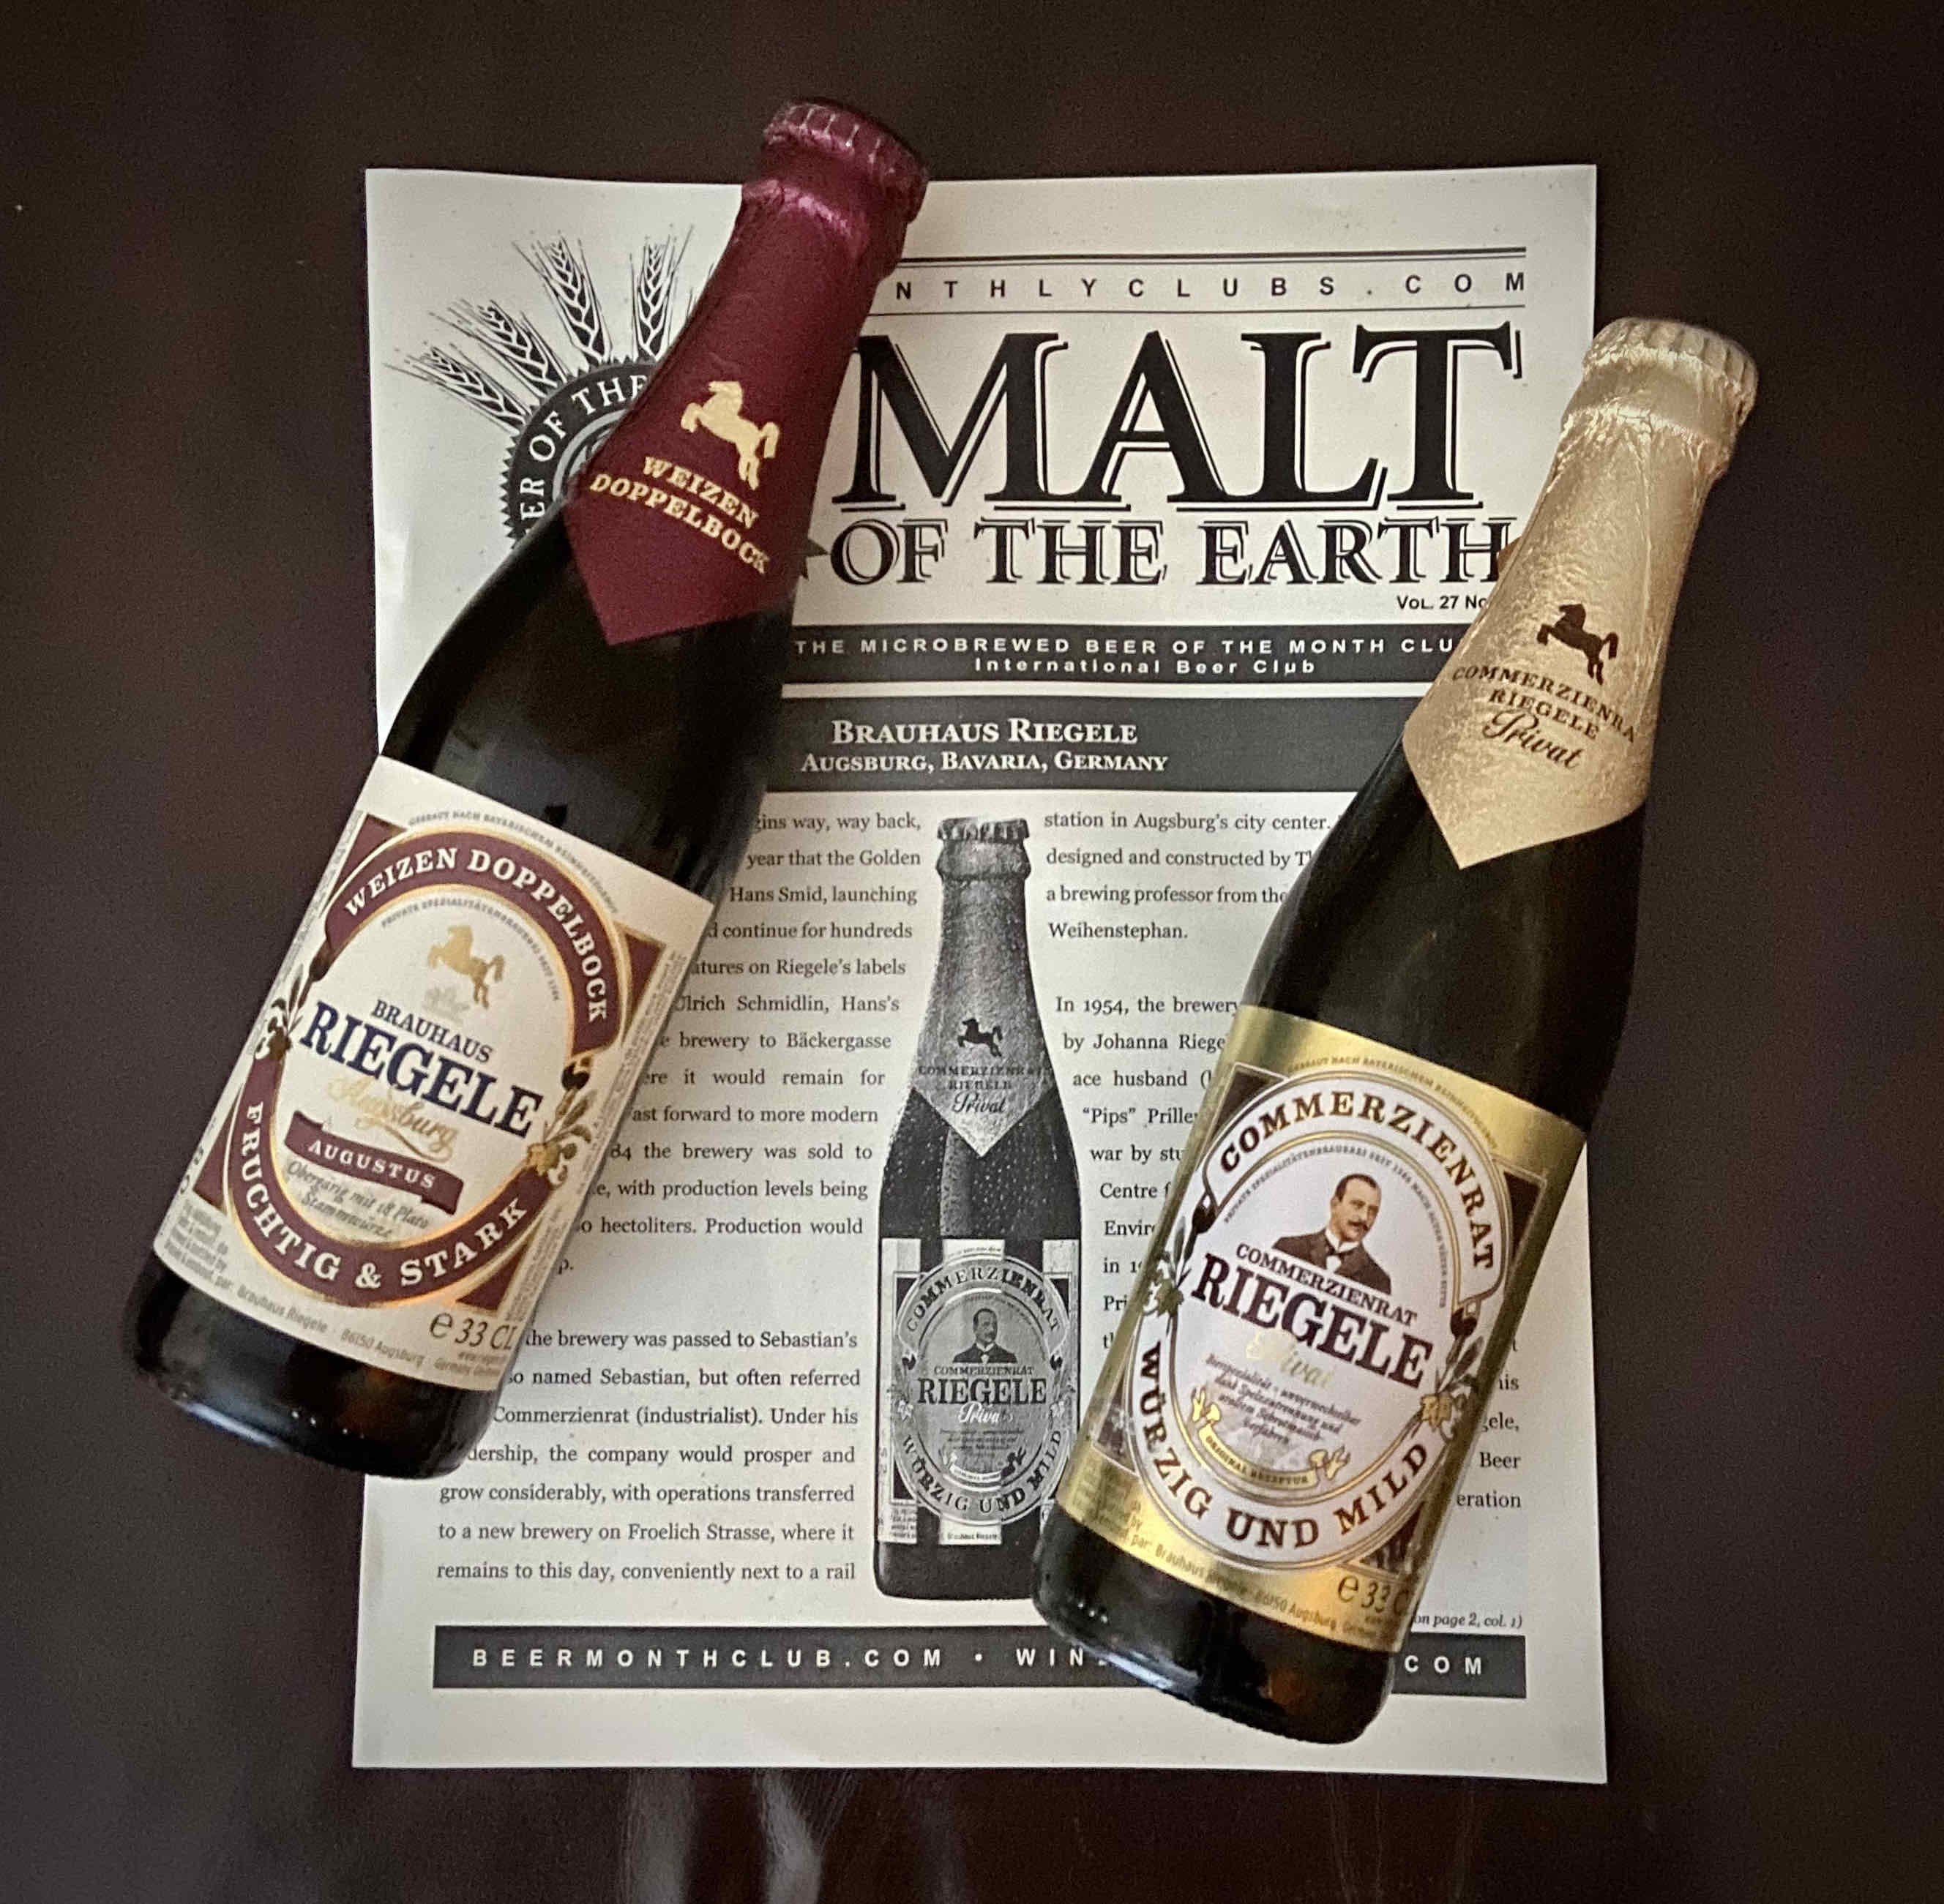 Receive 12 imported beers from The International Beer Club. The November box included two different beers from Brauhaus Riegele.